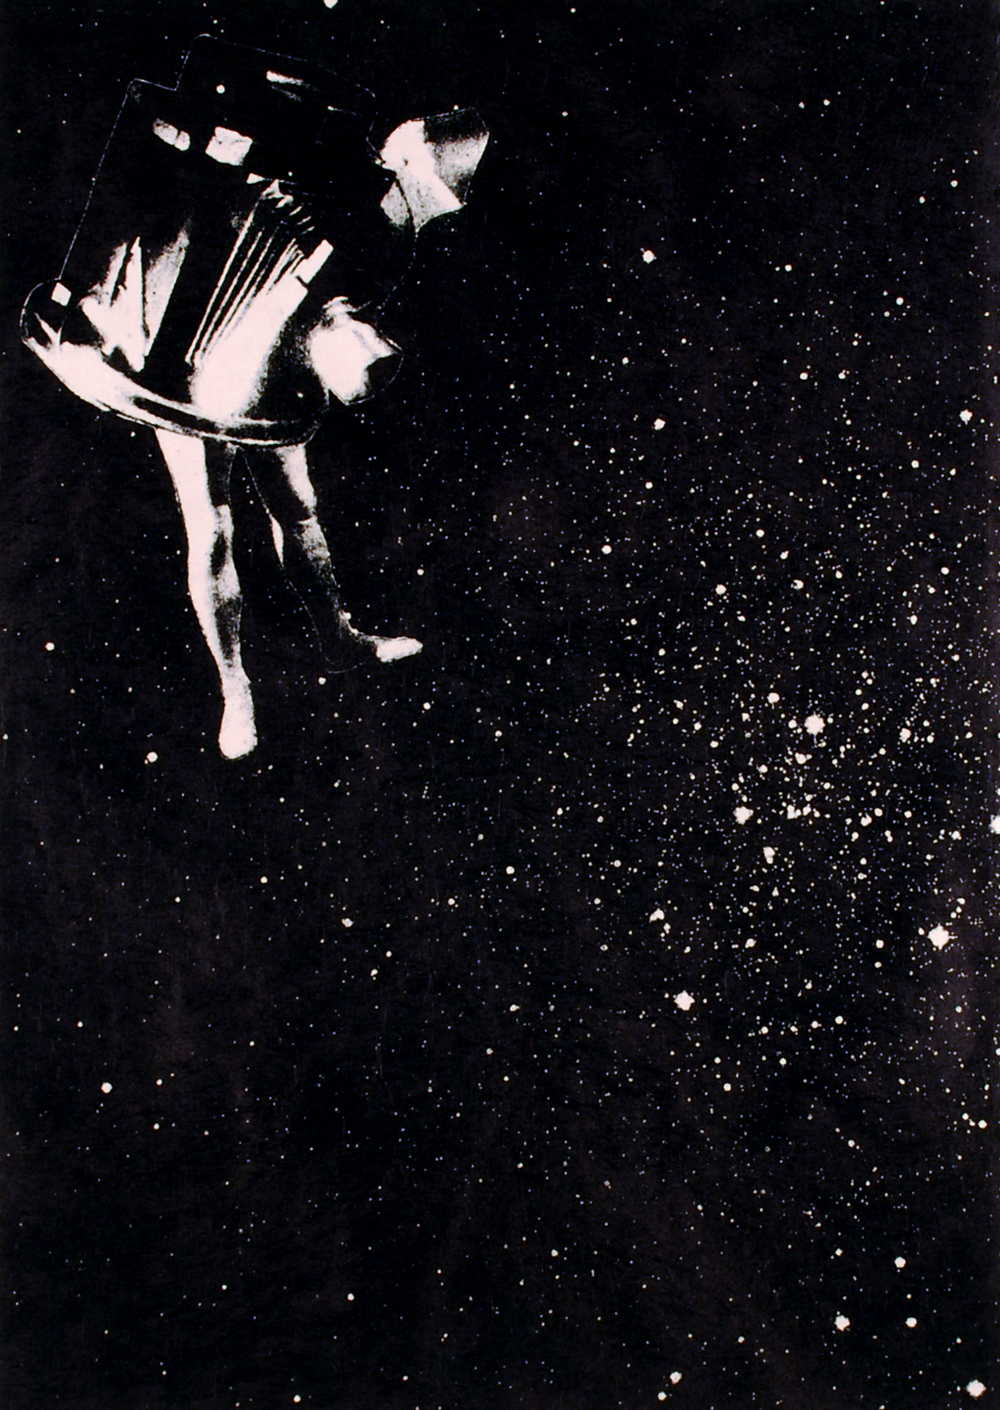 stargazing   chine-colle lithograph on rag paper  edition of 5  2011